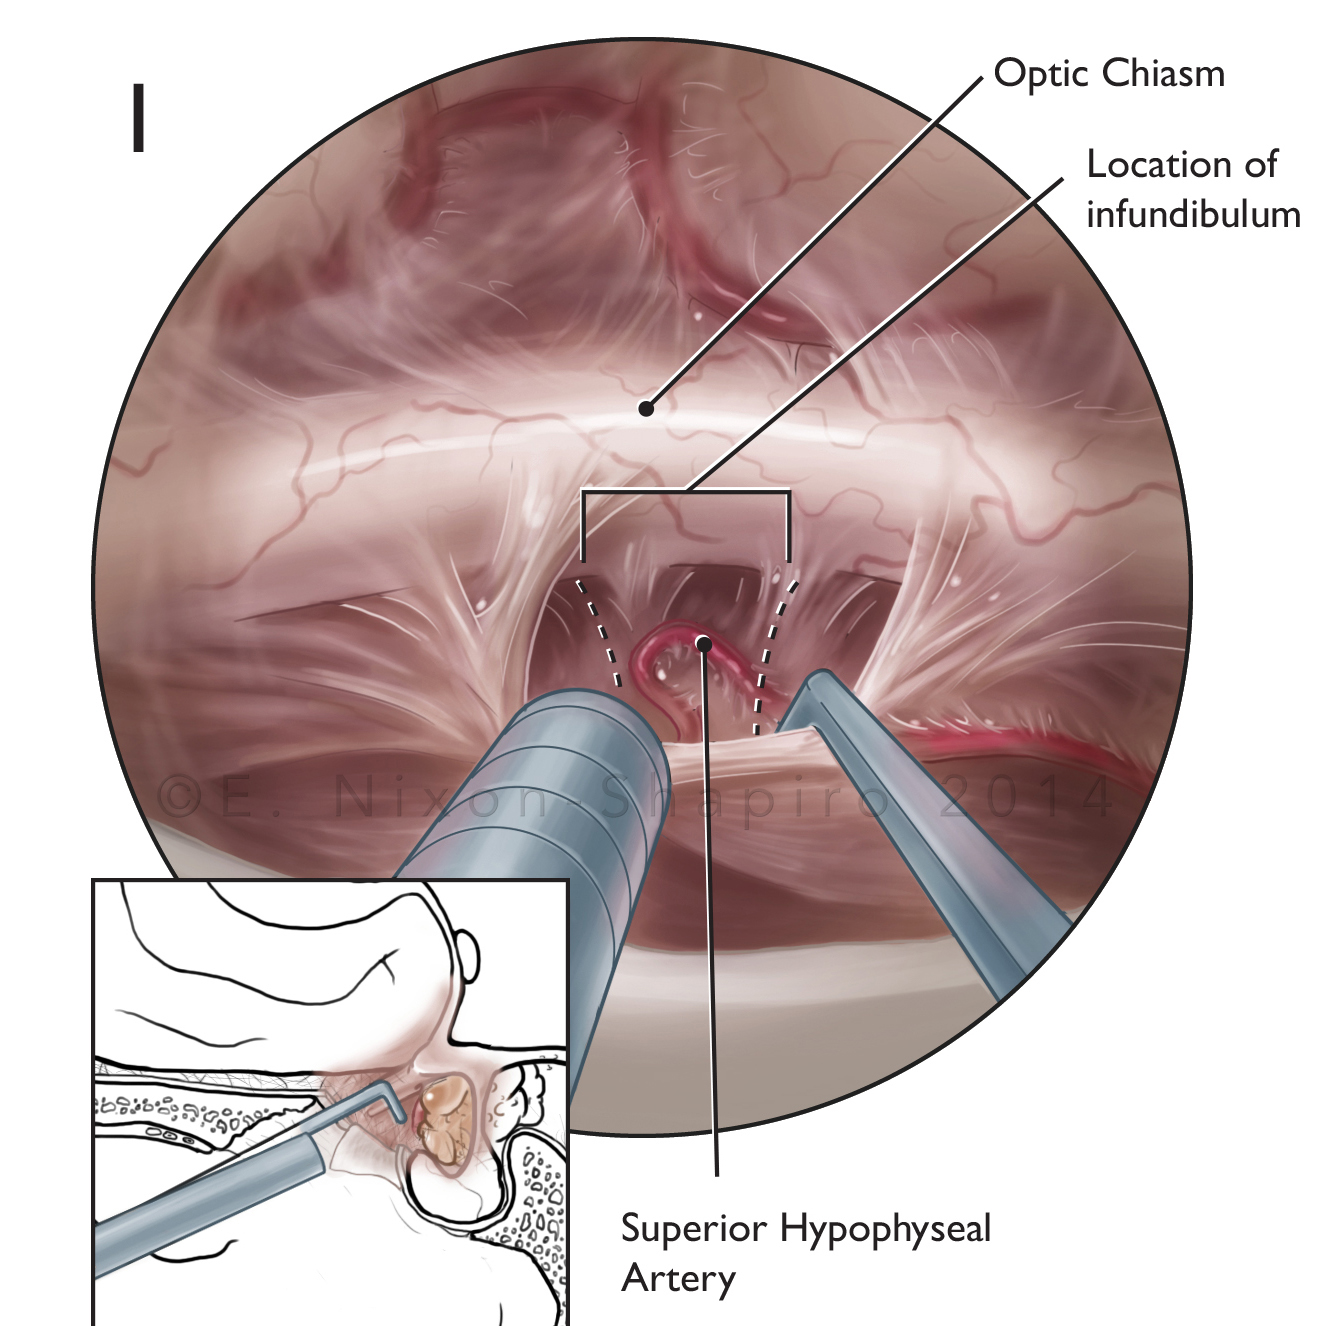 Transnasal Approach for Craniotomy with Craniopharyngioma Removal, Detail